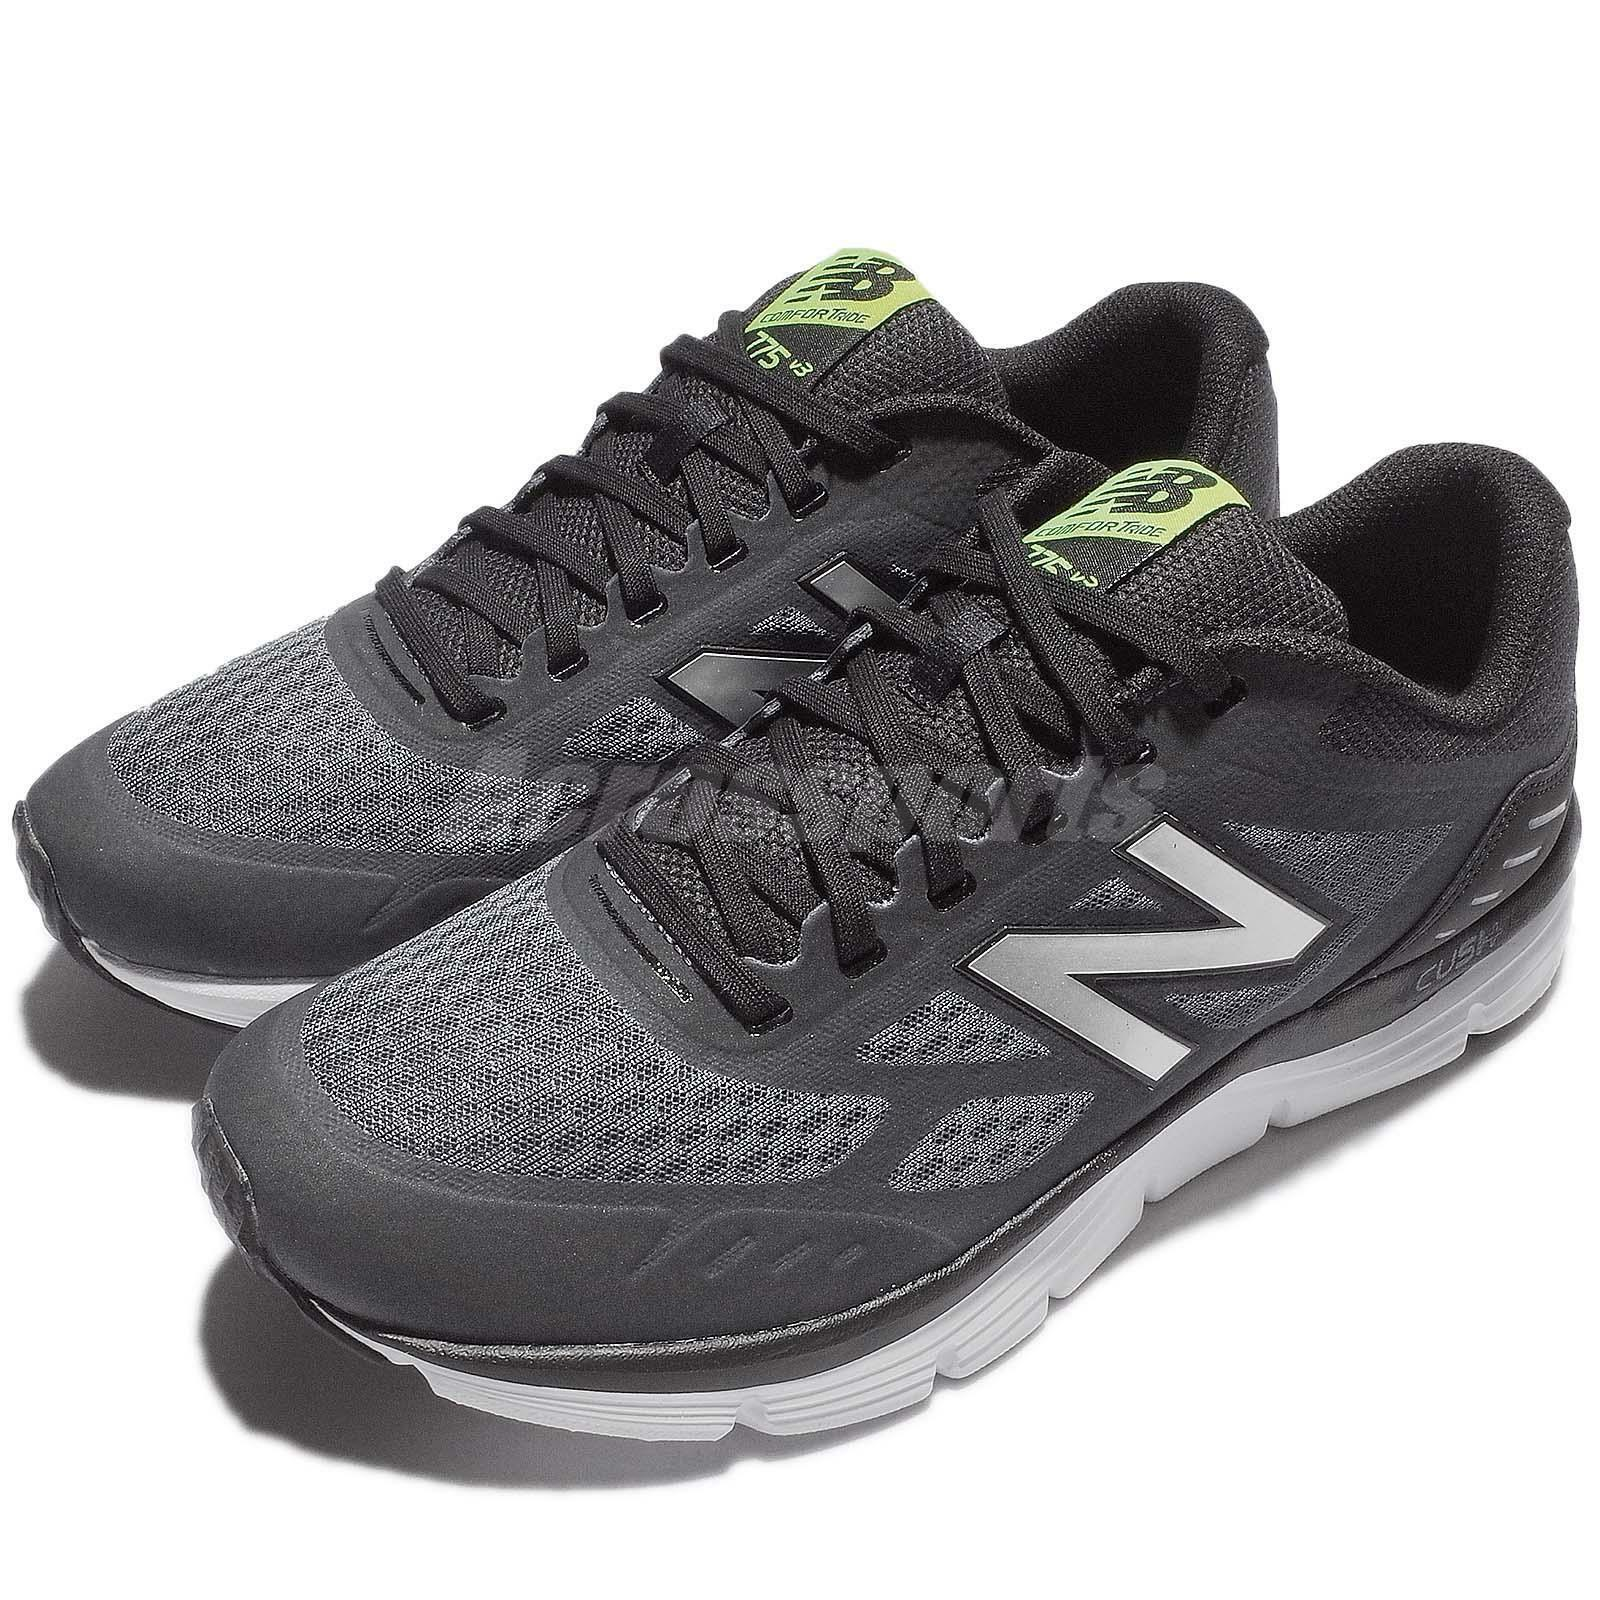 New Balance Balance Balance M775LT3 2E Wide Black White Men Running shoes Trainers M775LT32E 64f2c4